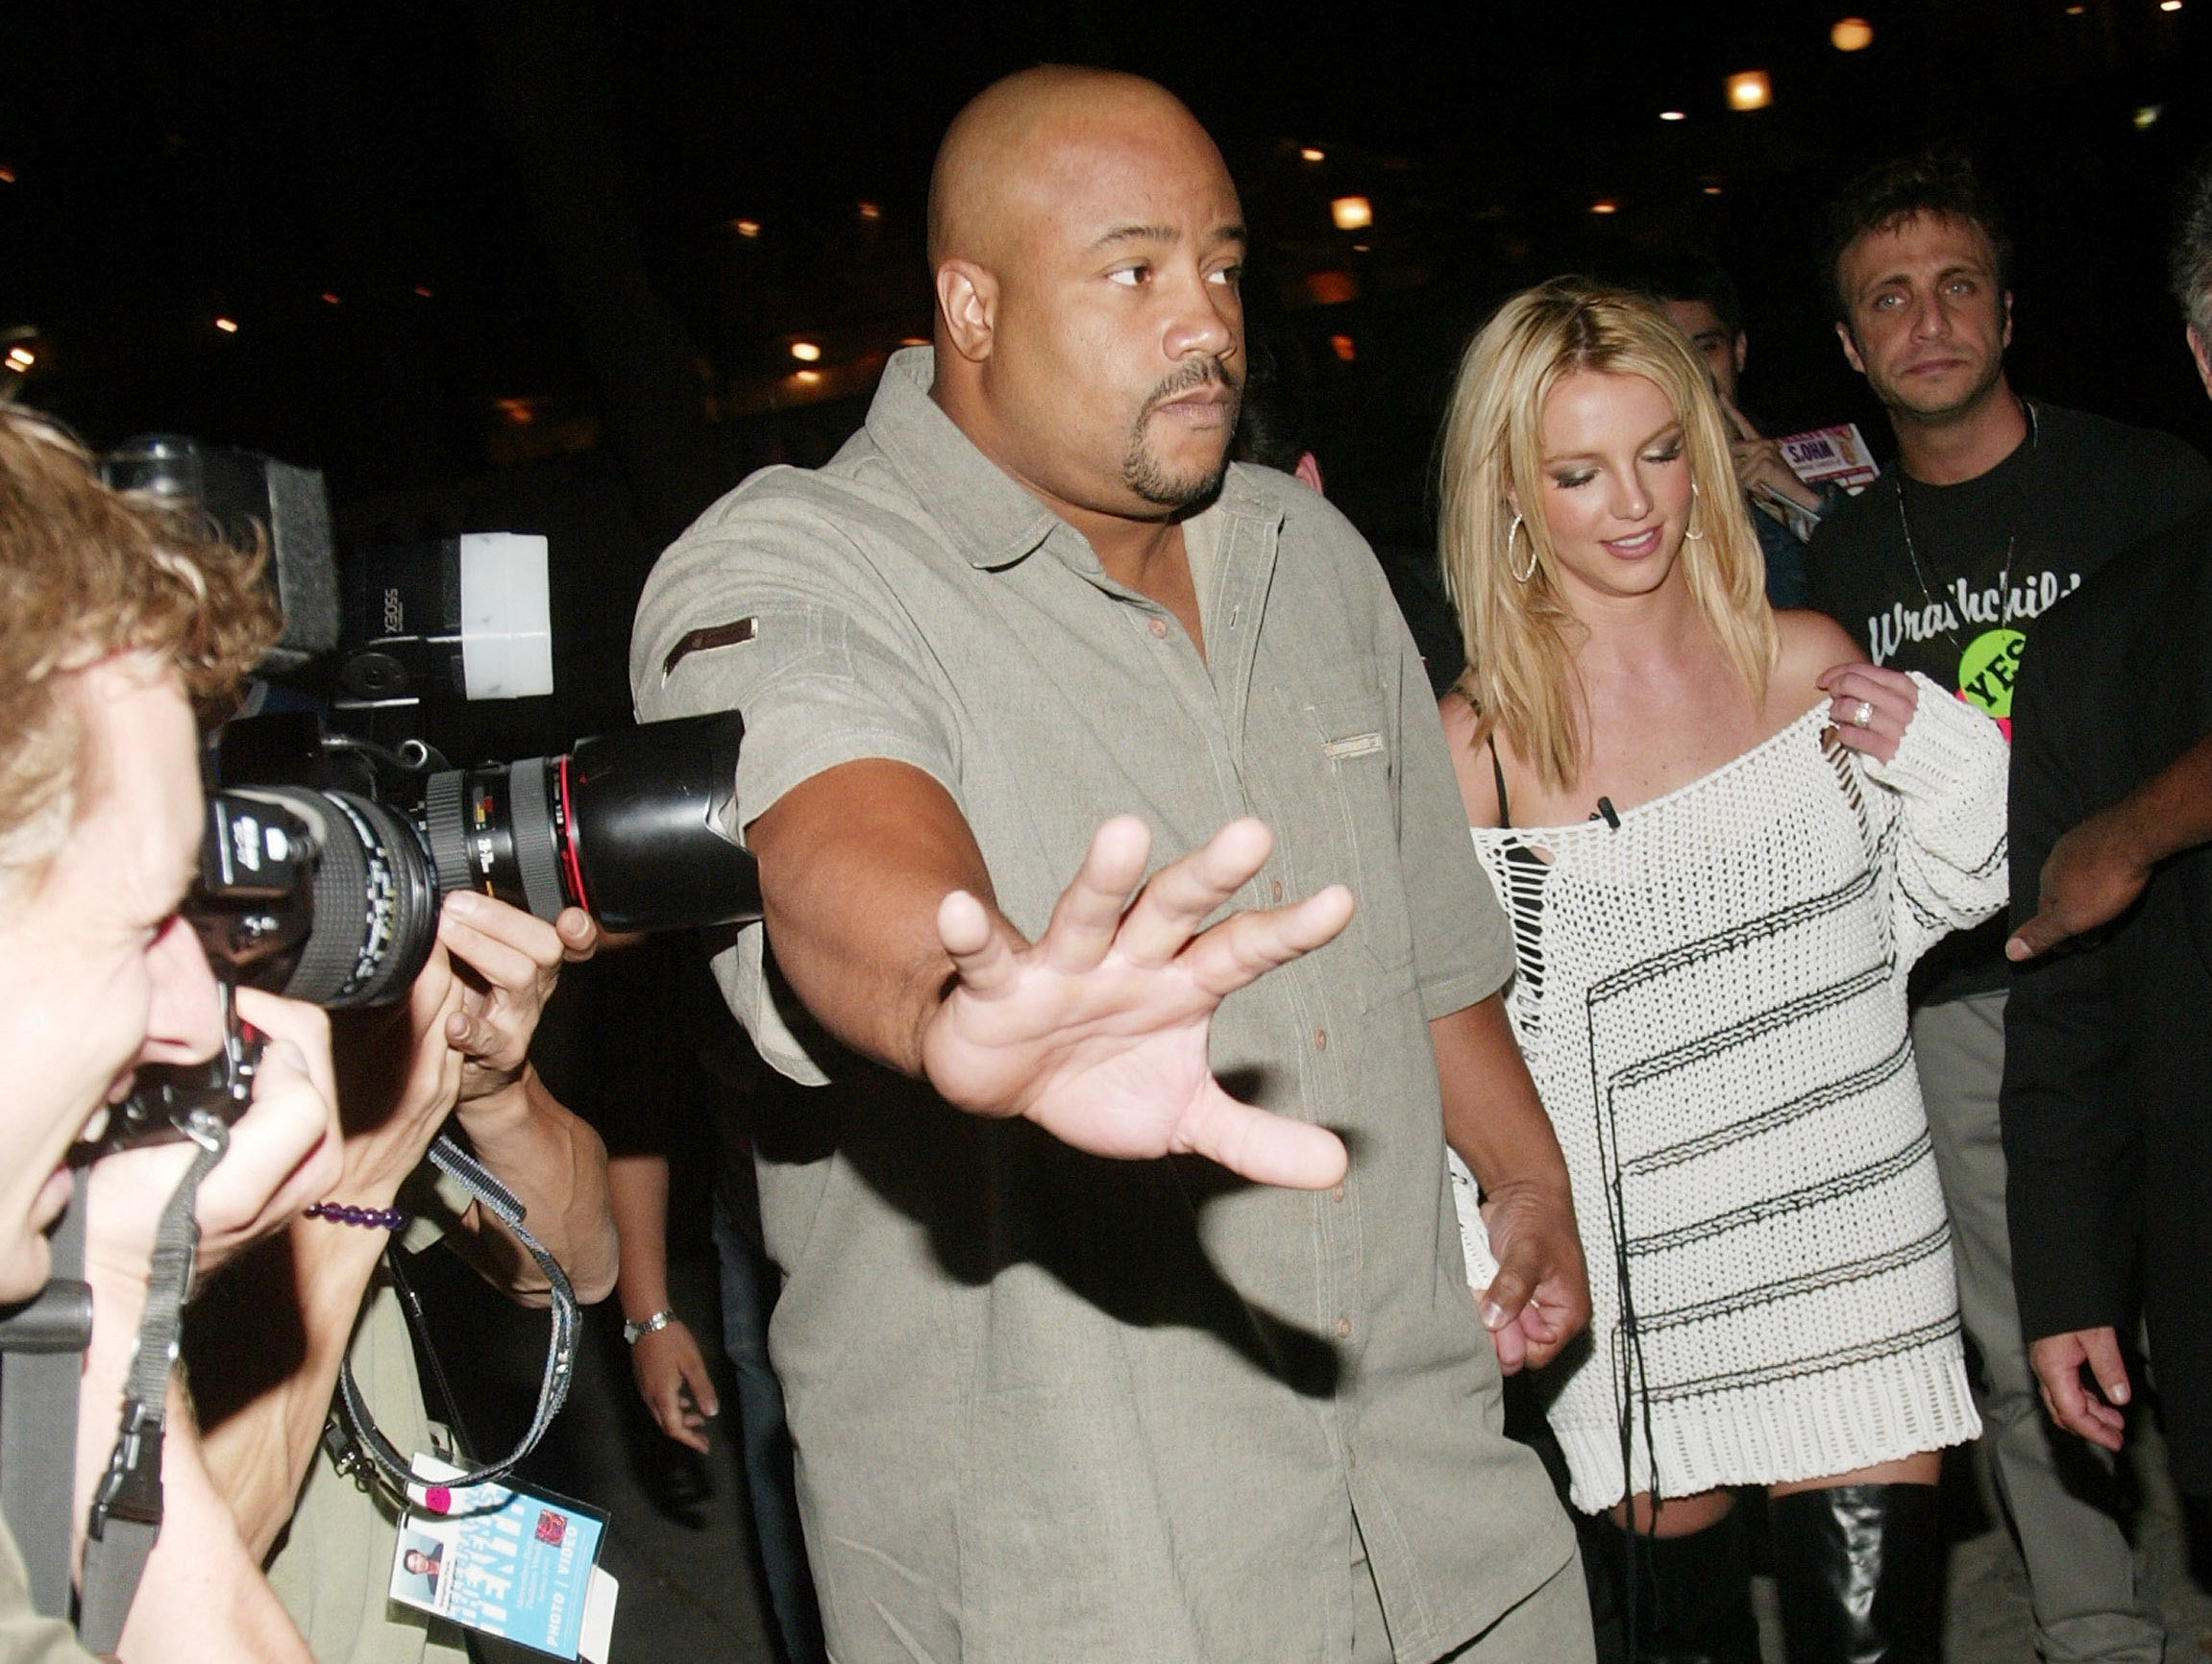 A bodyguard pushes cameras away from Britney while she walks down a street